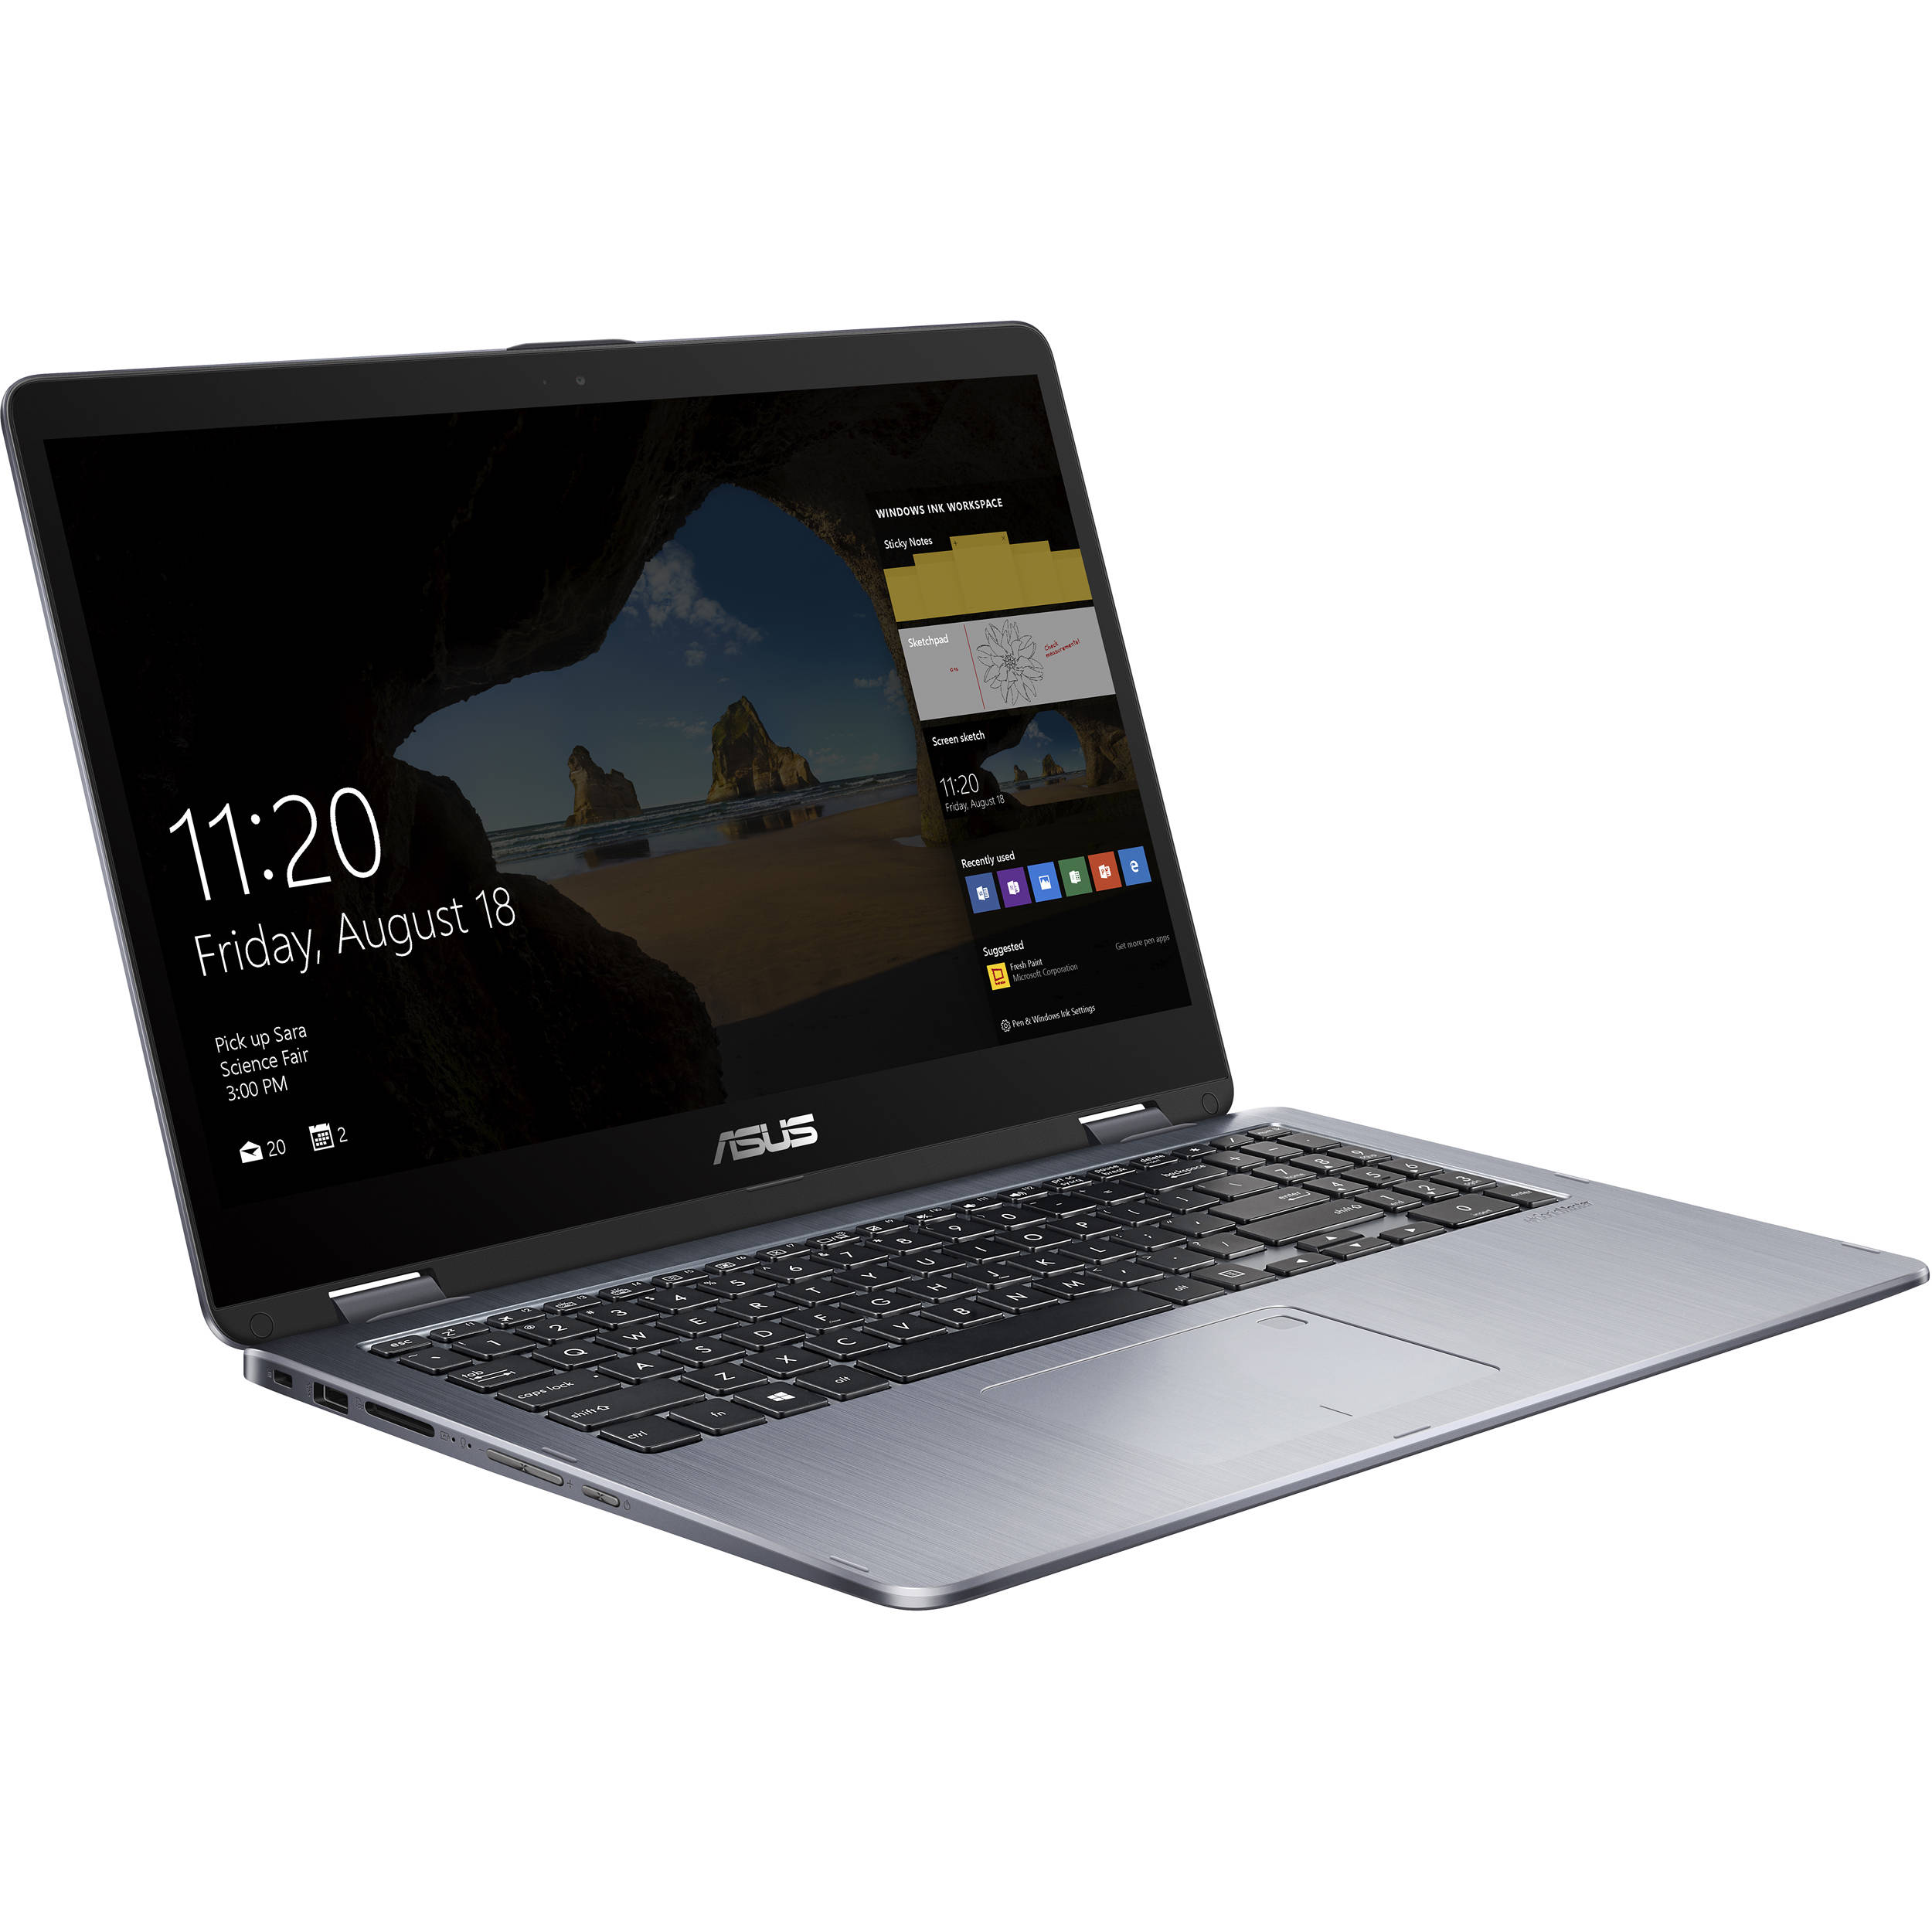 "Asus VivoBook Flip TP510UA 15.6"" Core i7-8550U 1920 x 1080 Multi-Touch 2-in-1 Notebook by ASUS"